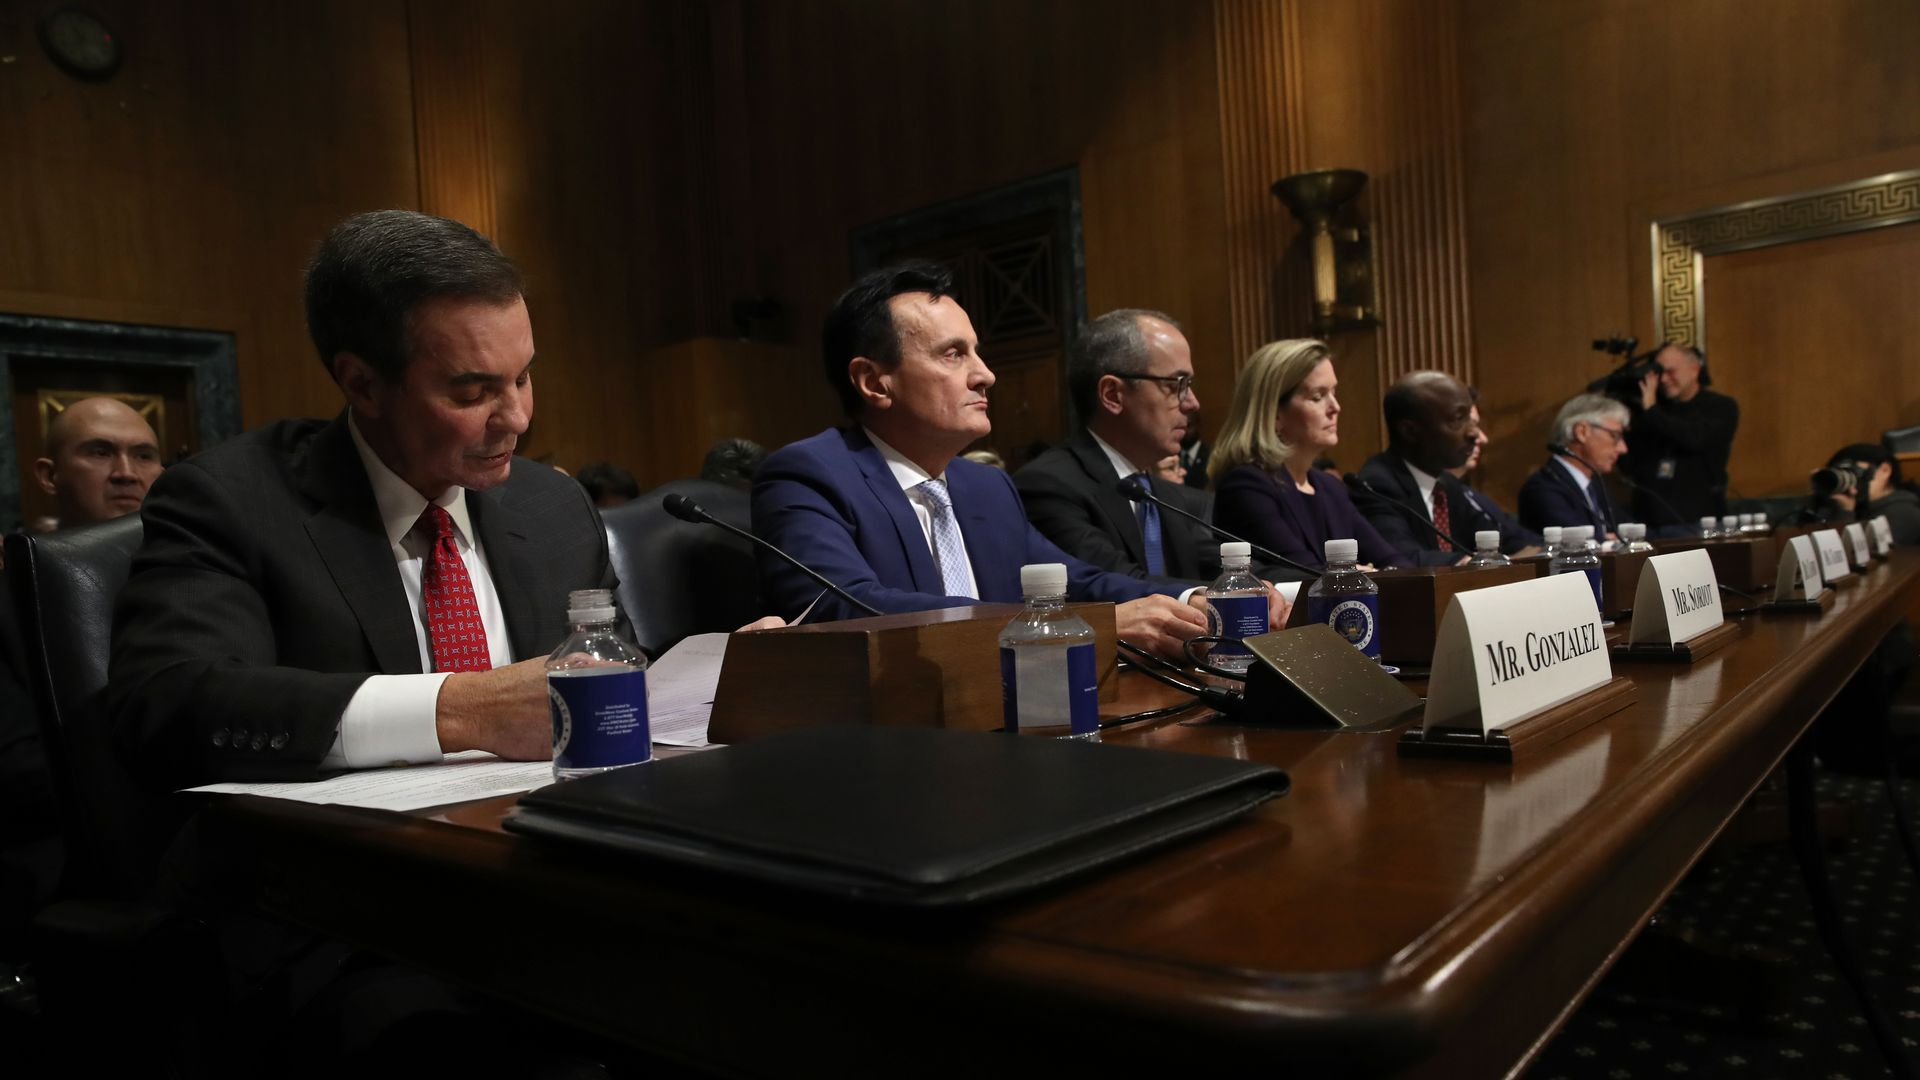 The executives 7 pharmaceutical companies sit at a table in front of the Senate.